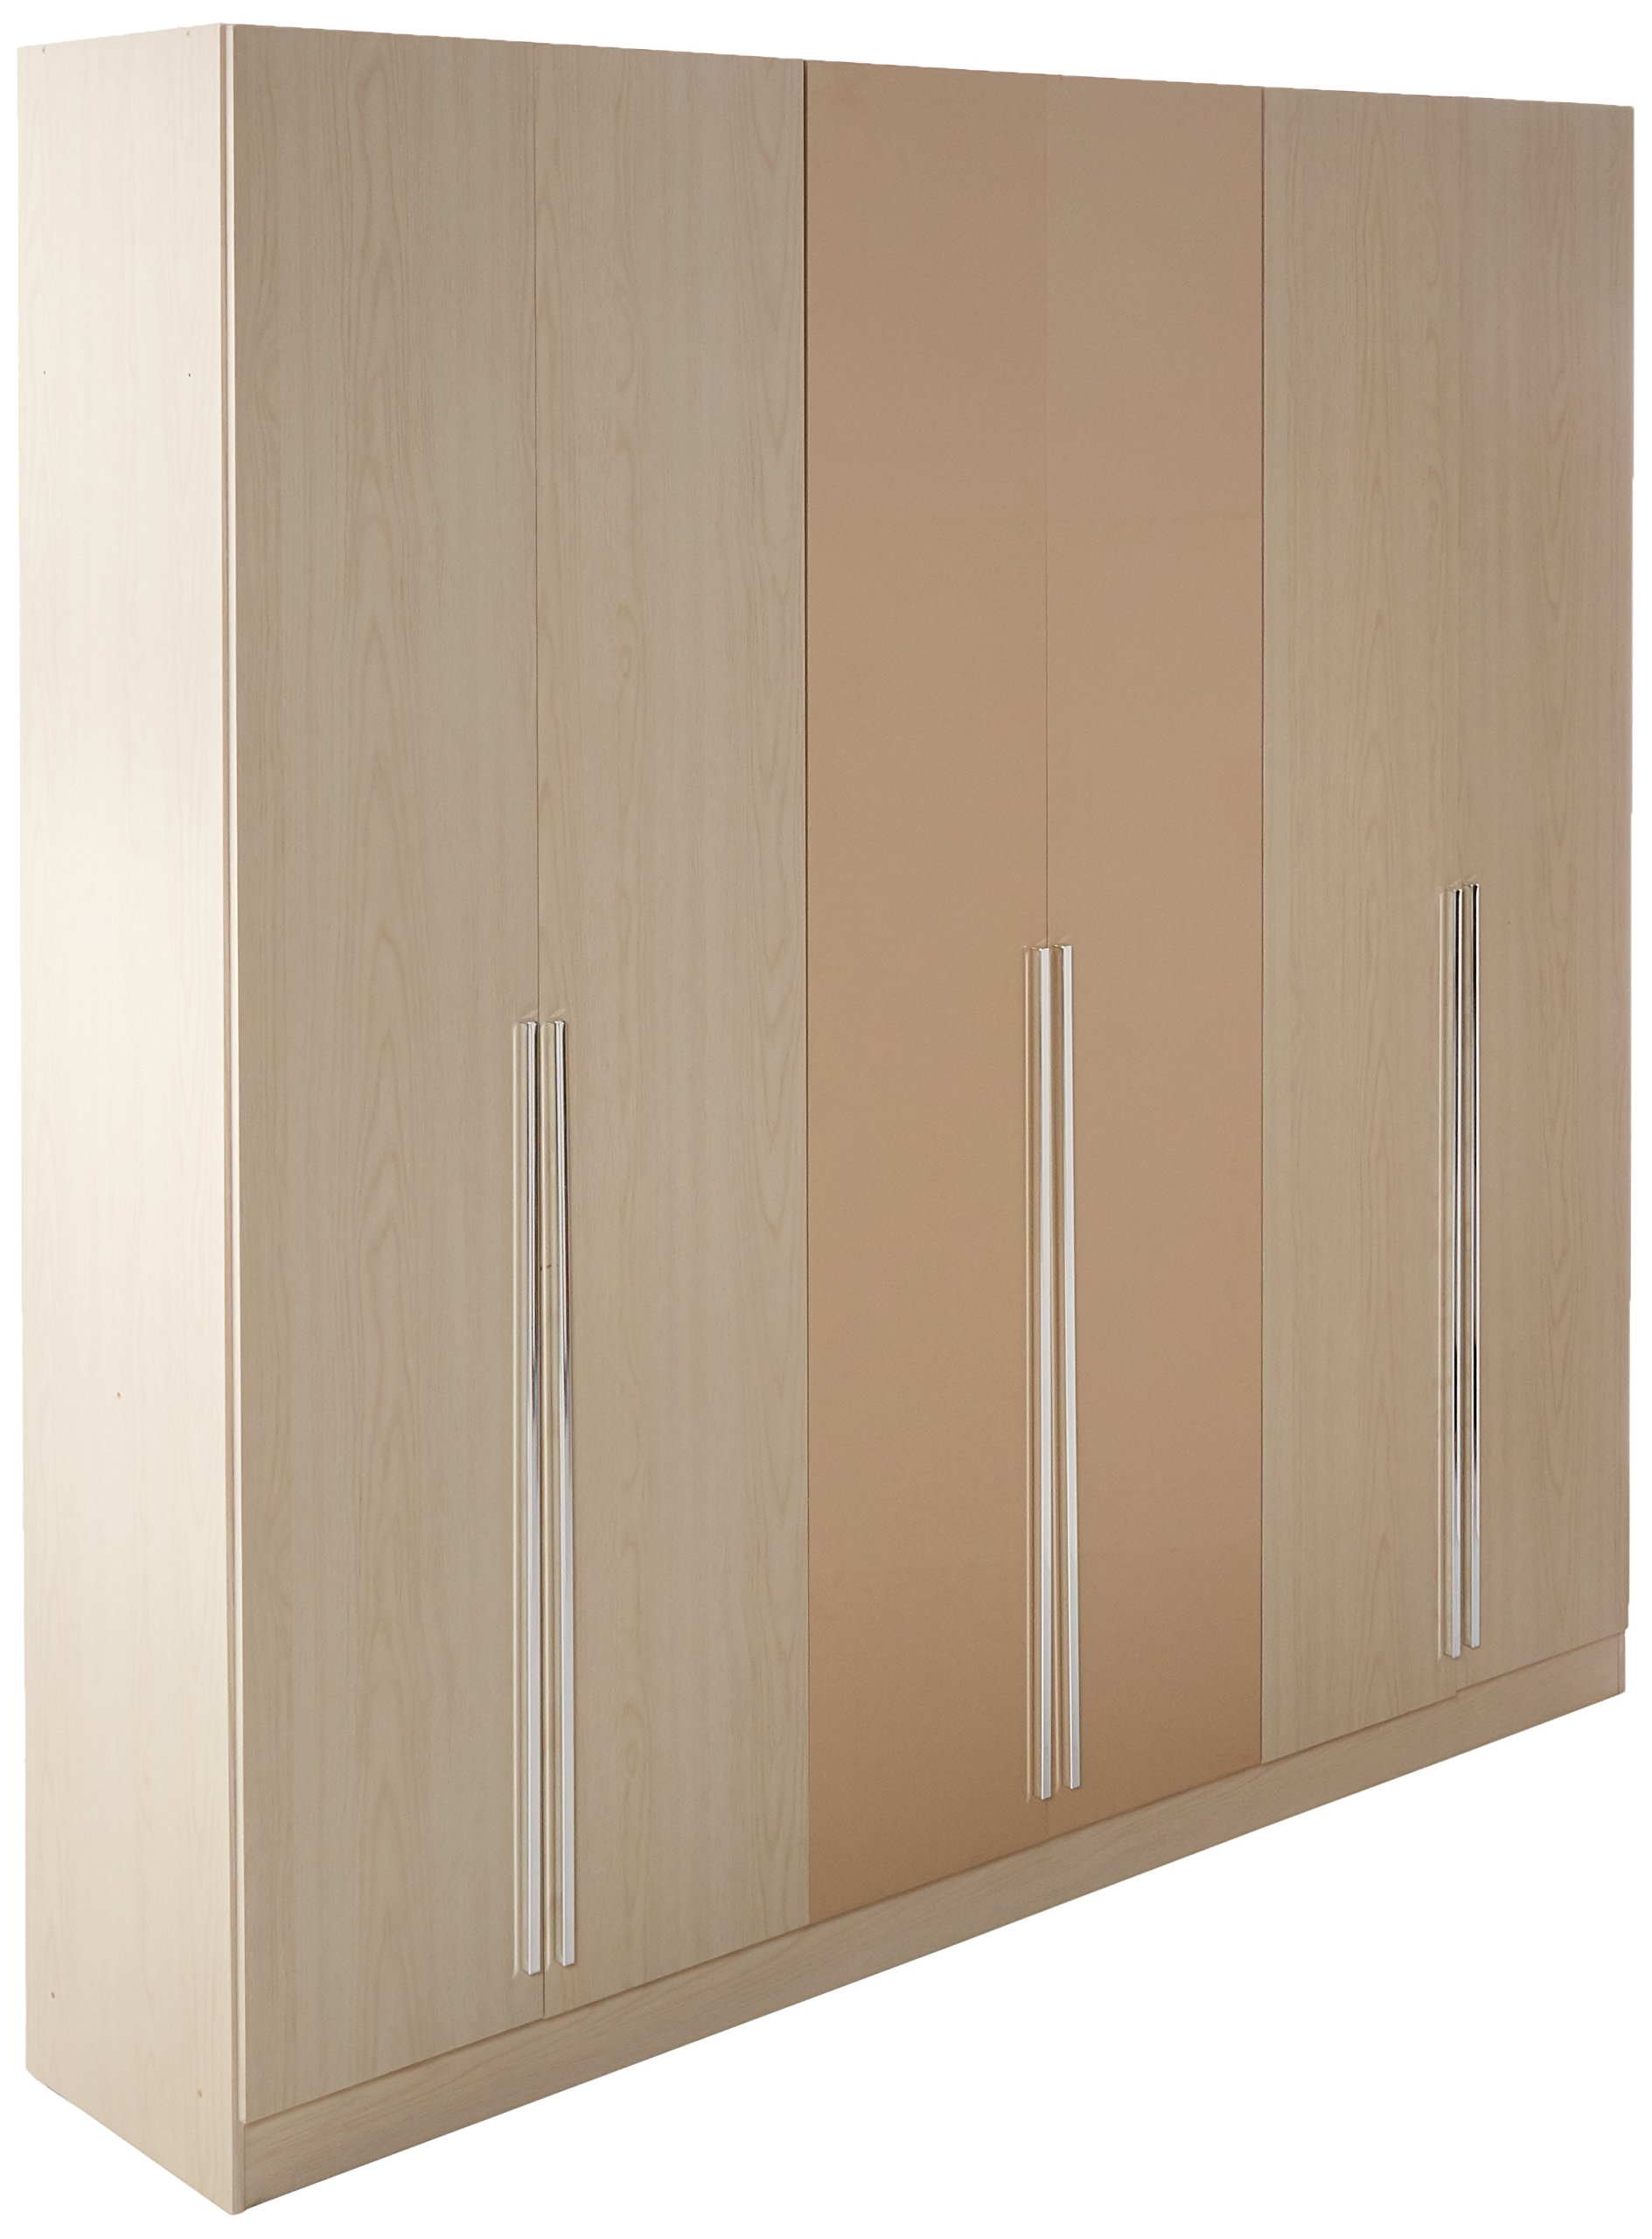 Manhattan Comfort Eldridge Collection 6 Door Freestanding Wardrobe Closet for Bedroom, Oak Vanilla and Nude